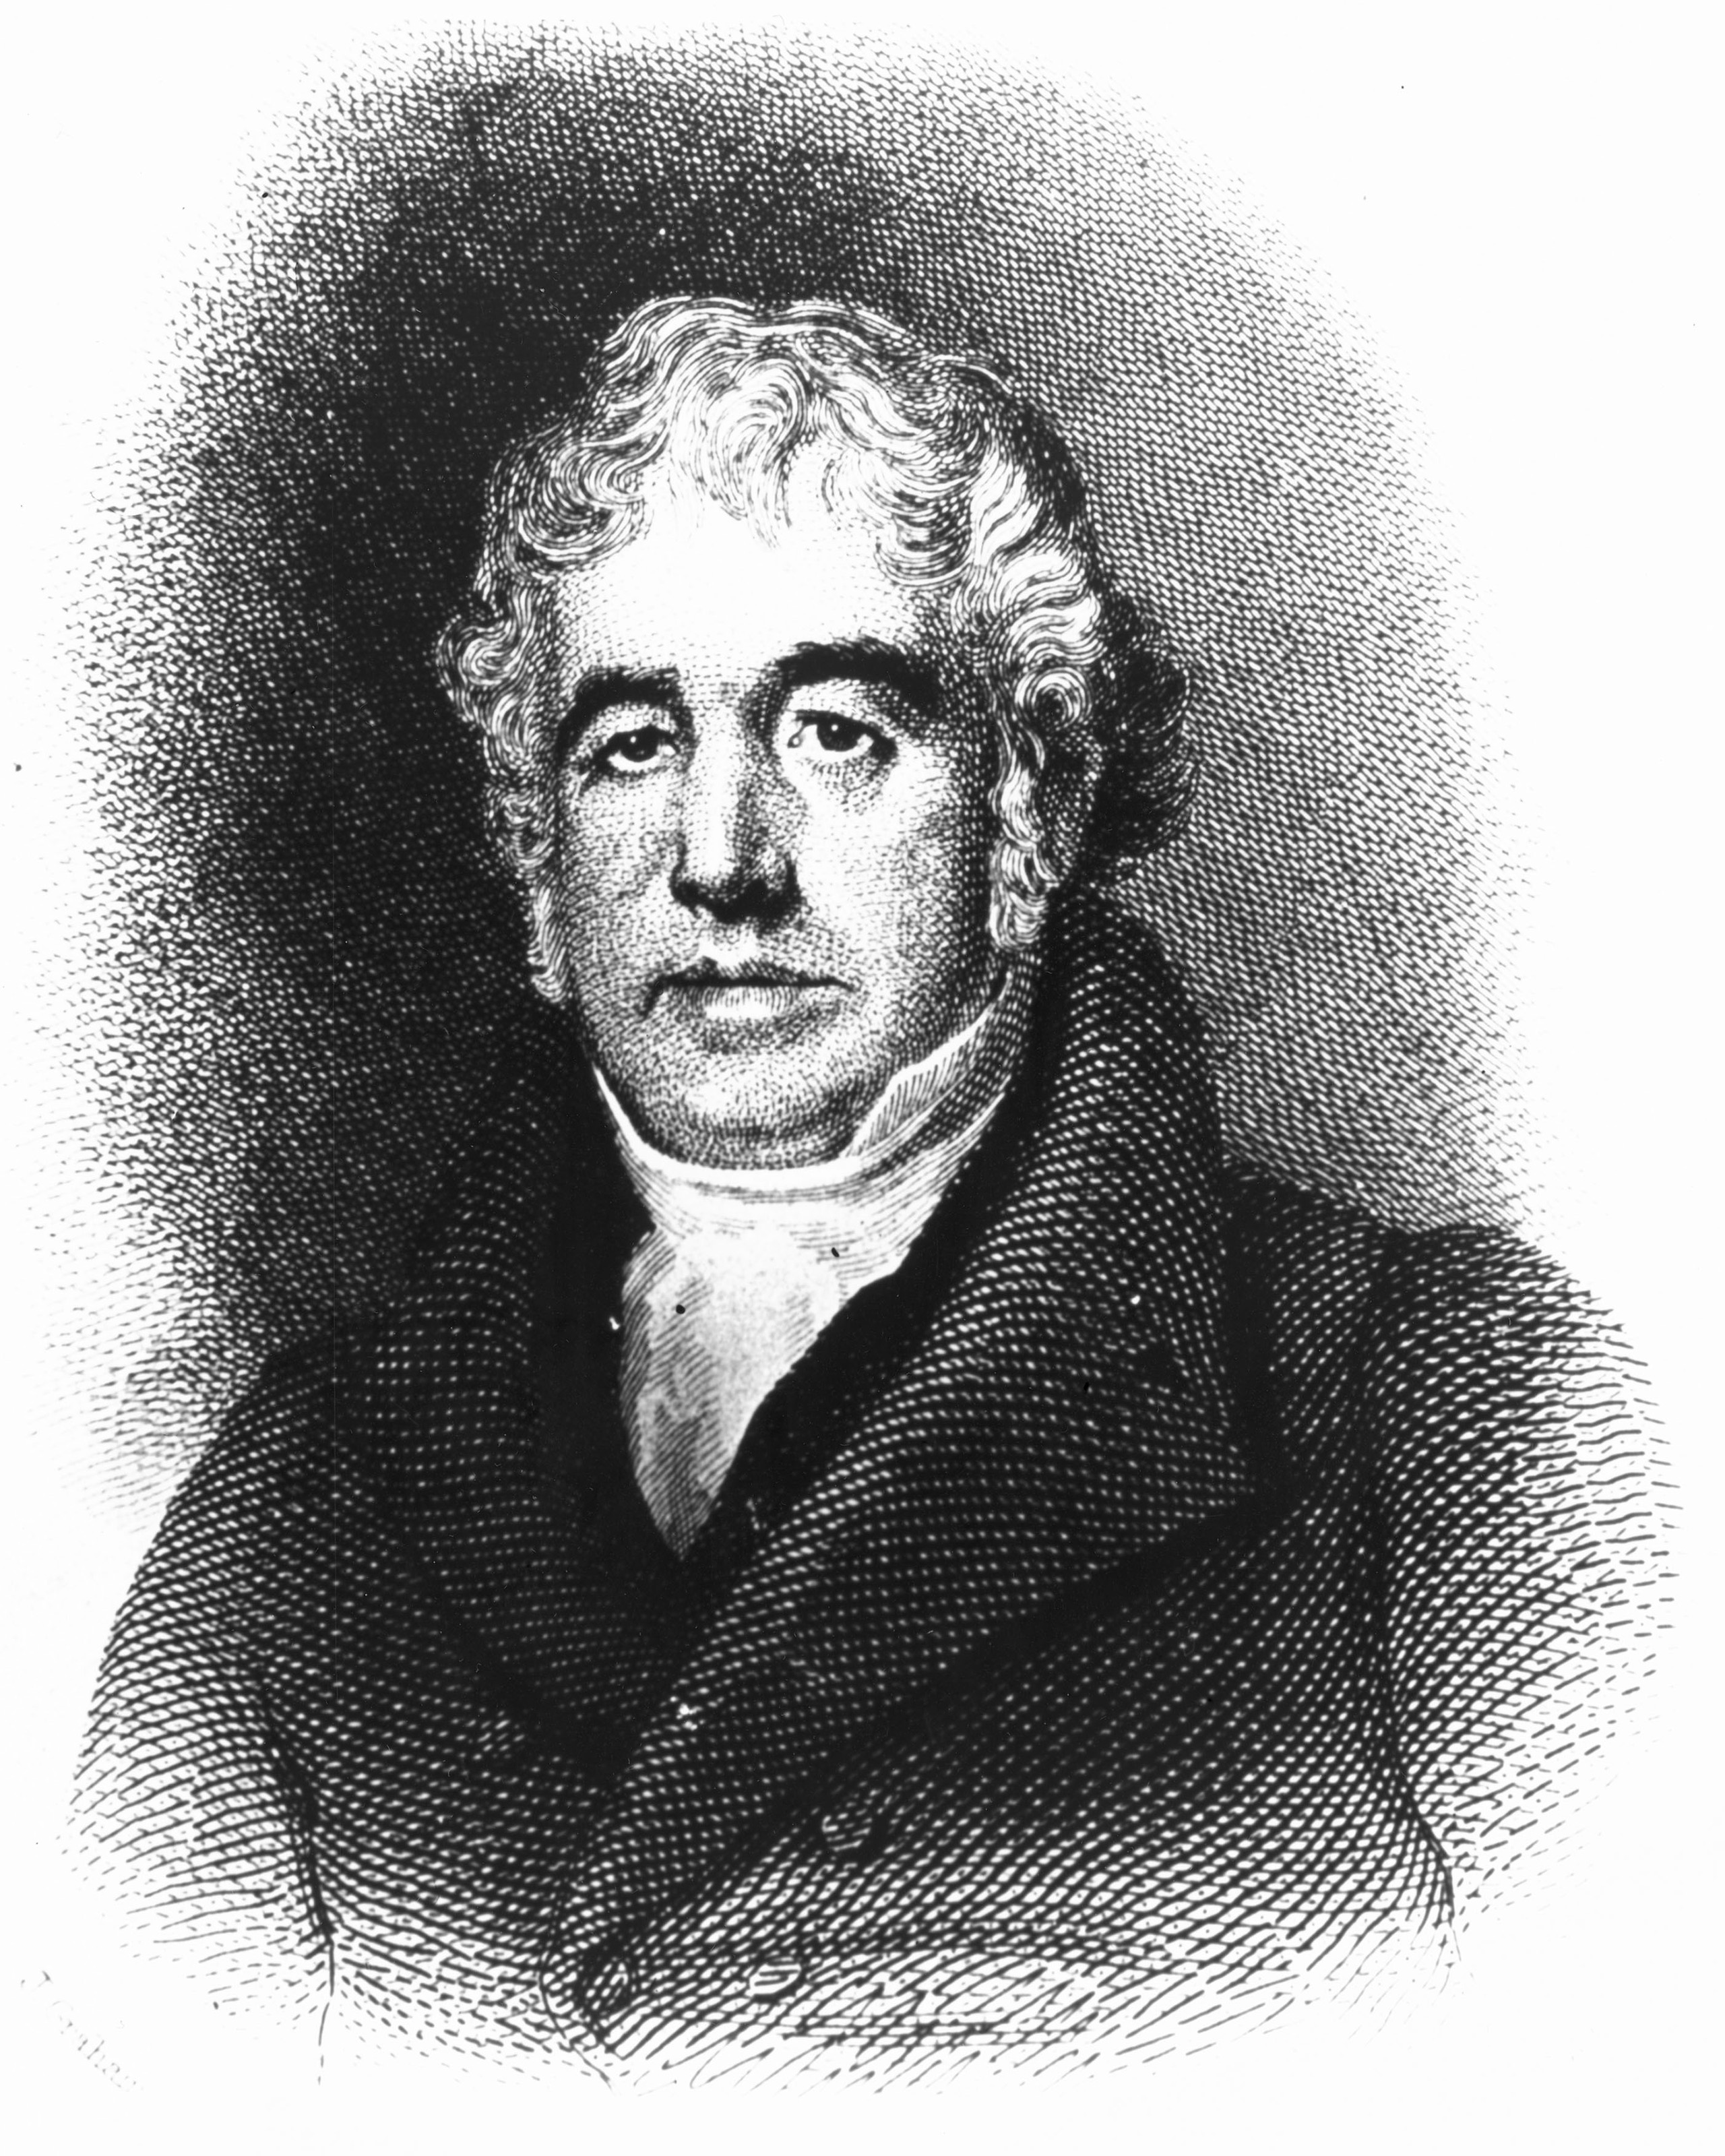 An engraving of Charlies Macintosh, who in 1823 successfully produced the first waterproof cloth when he bonded together two pieces of woolen cloth with a solution of dissolved india-rubber.